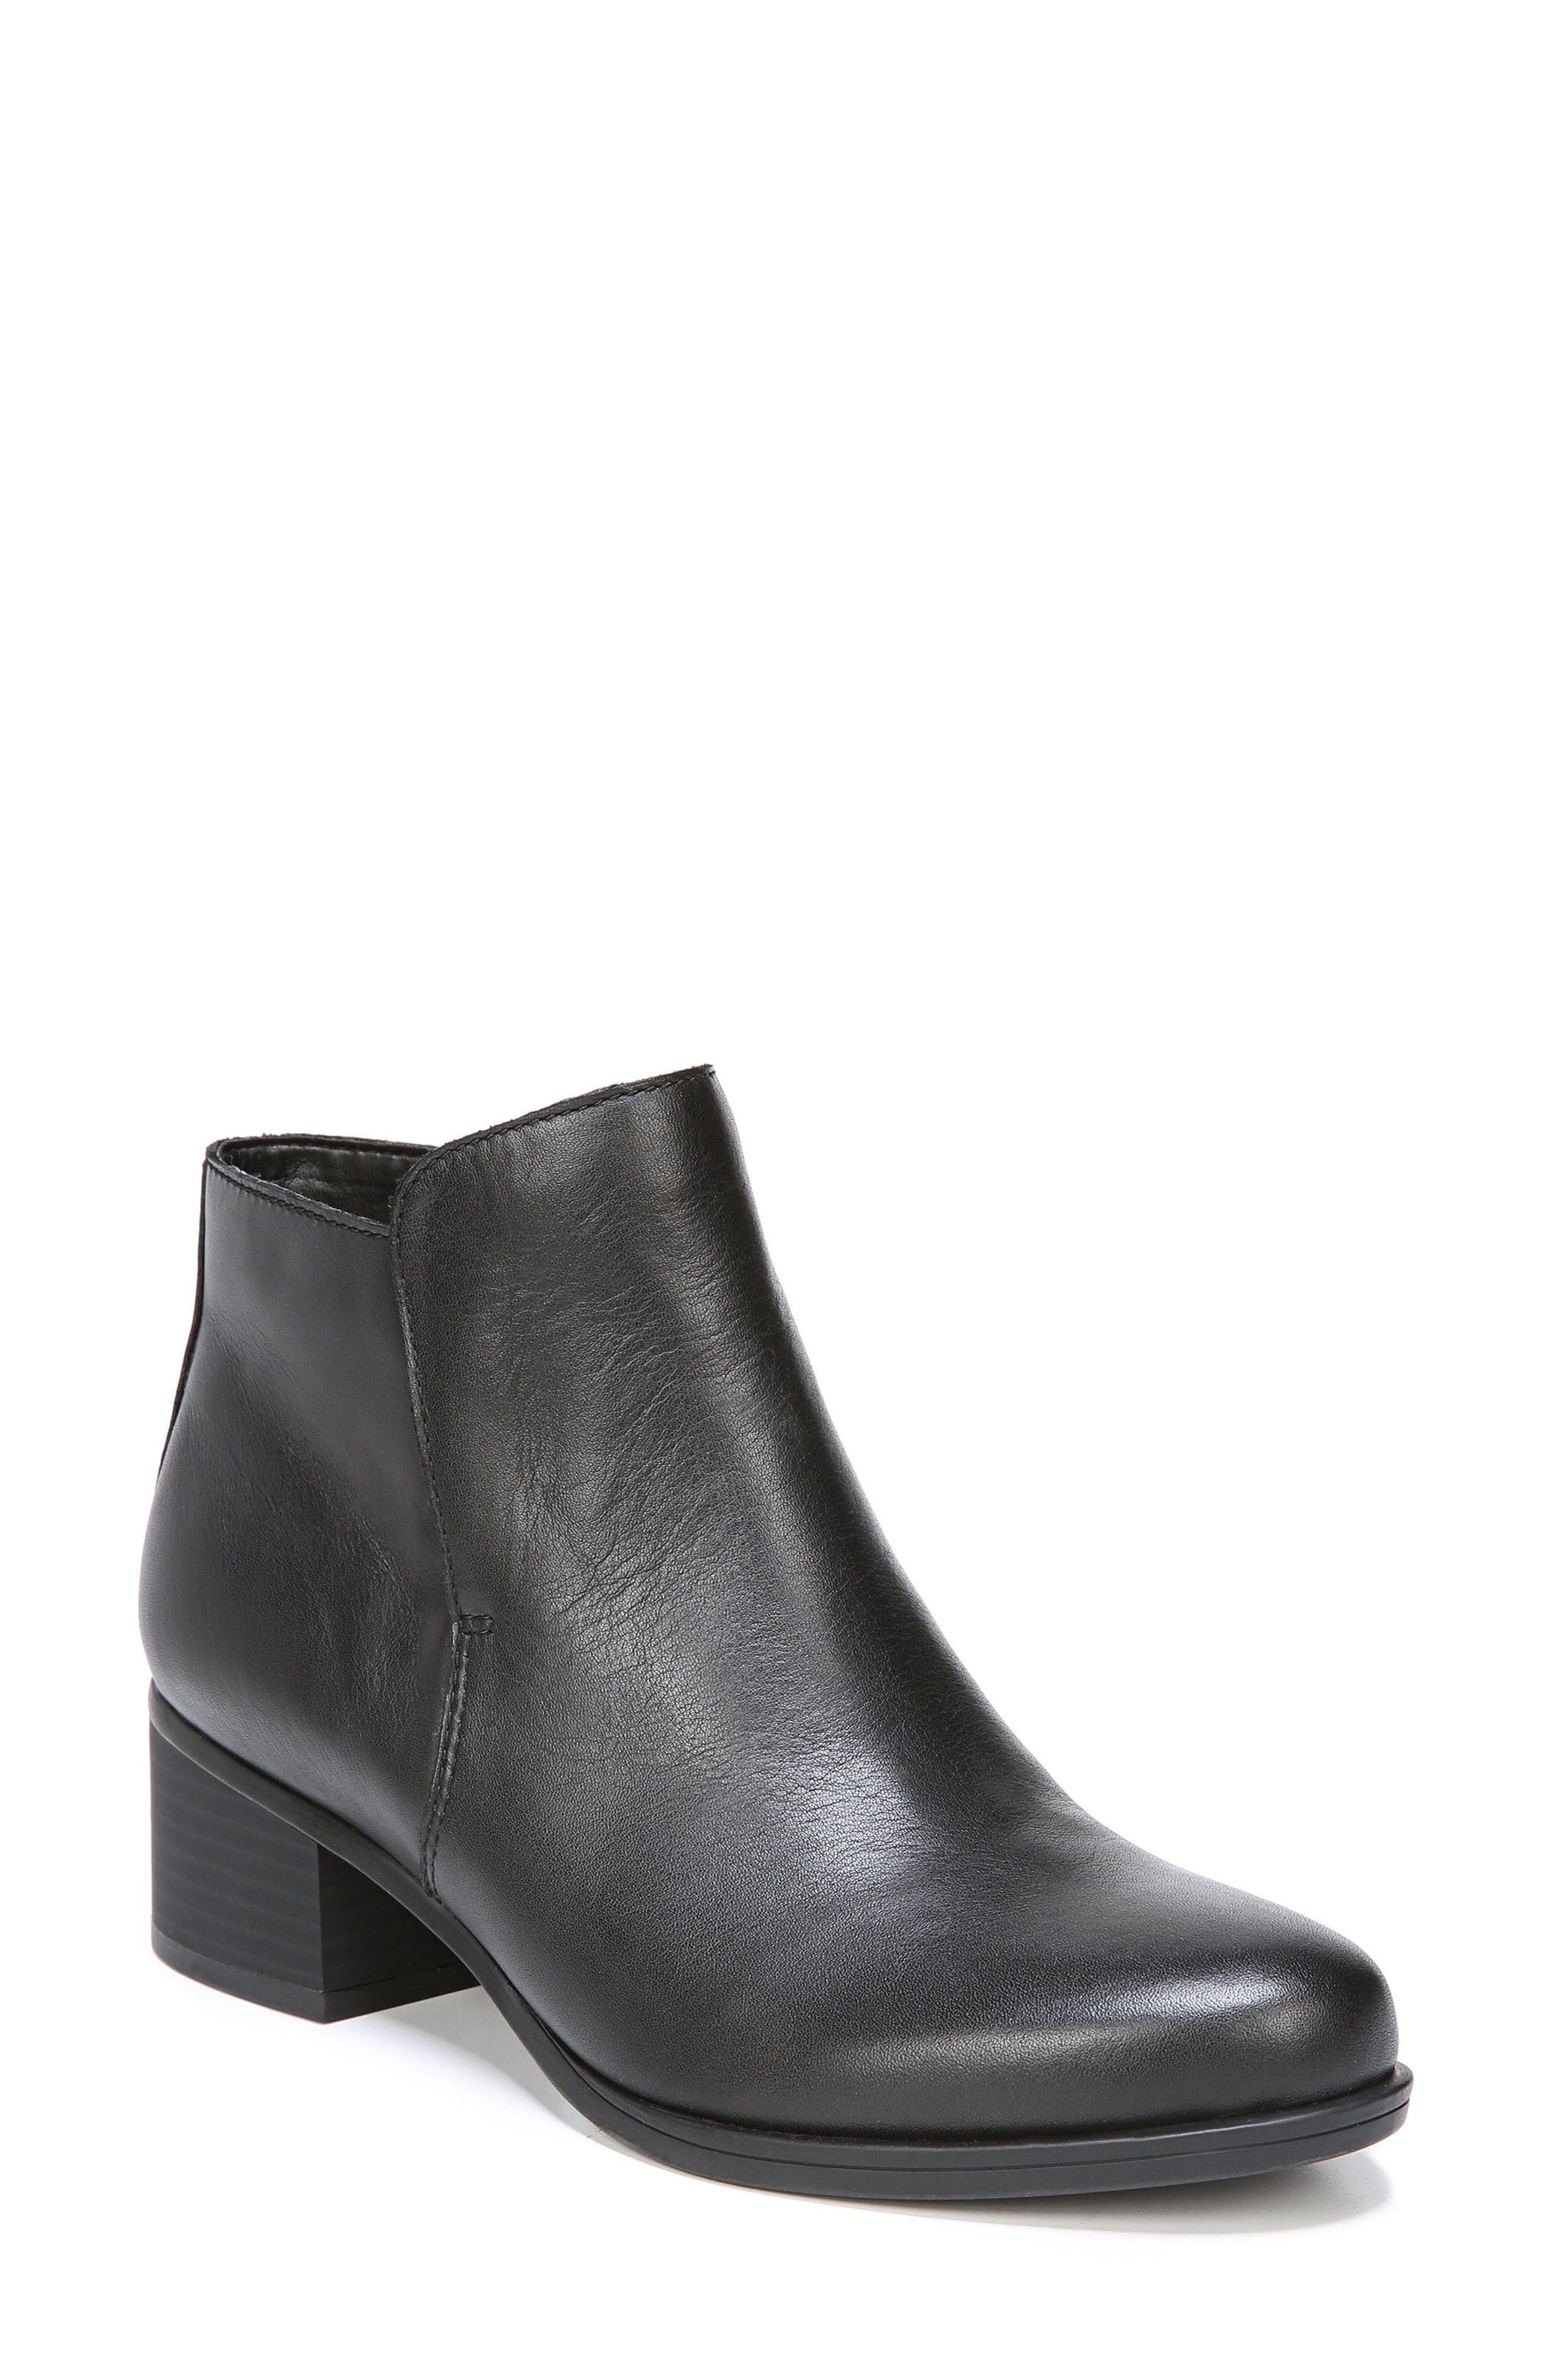 Dawson Waterproof Bootie,                             Main thumbnail 1, color,                             Black Leather